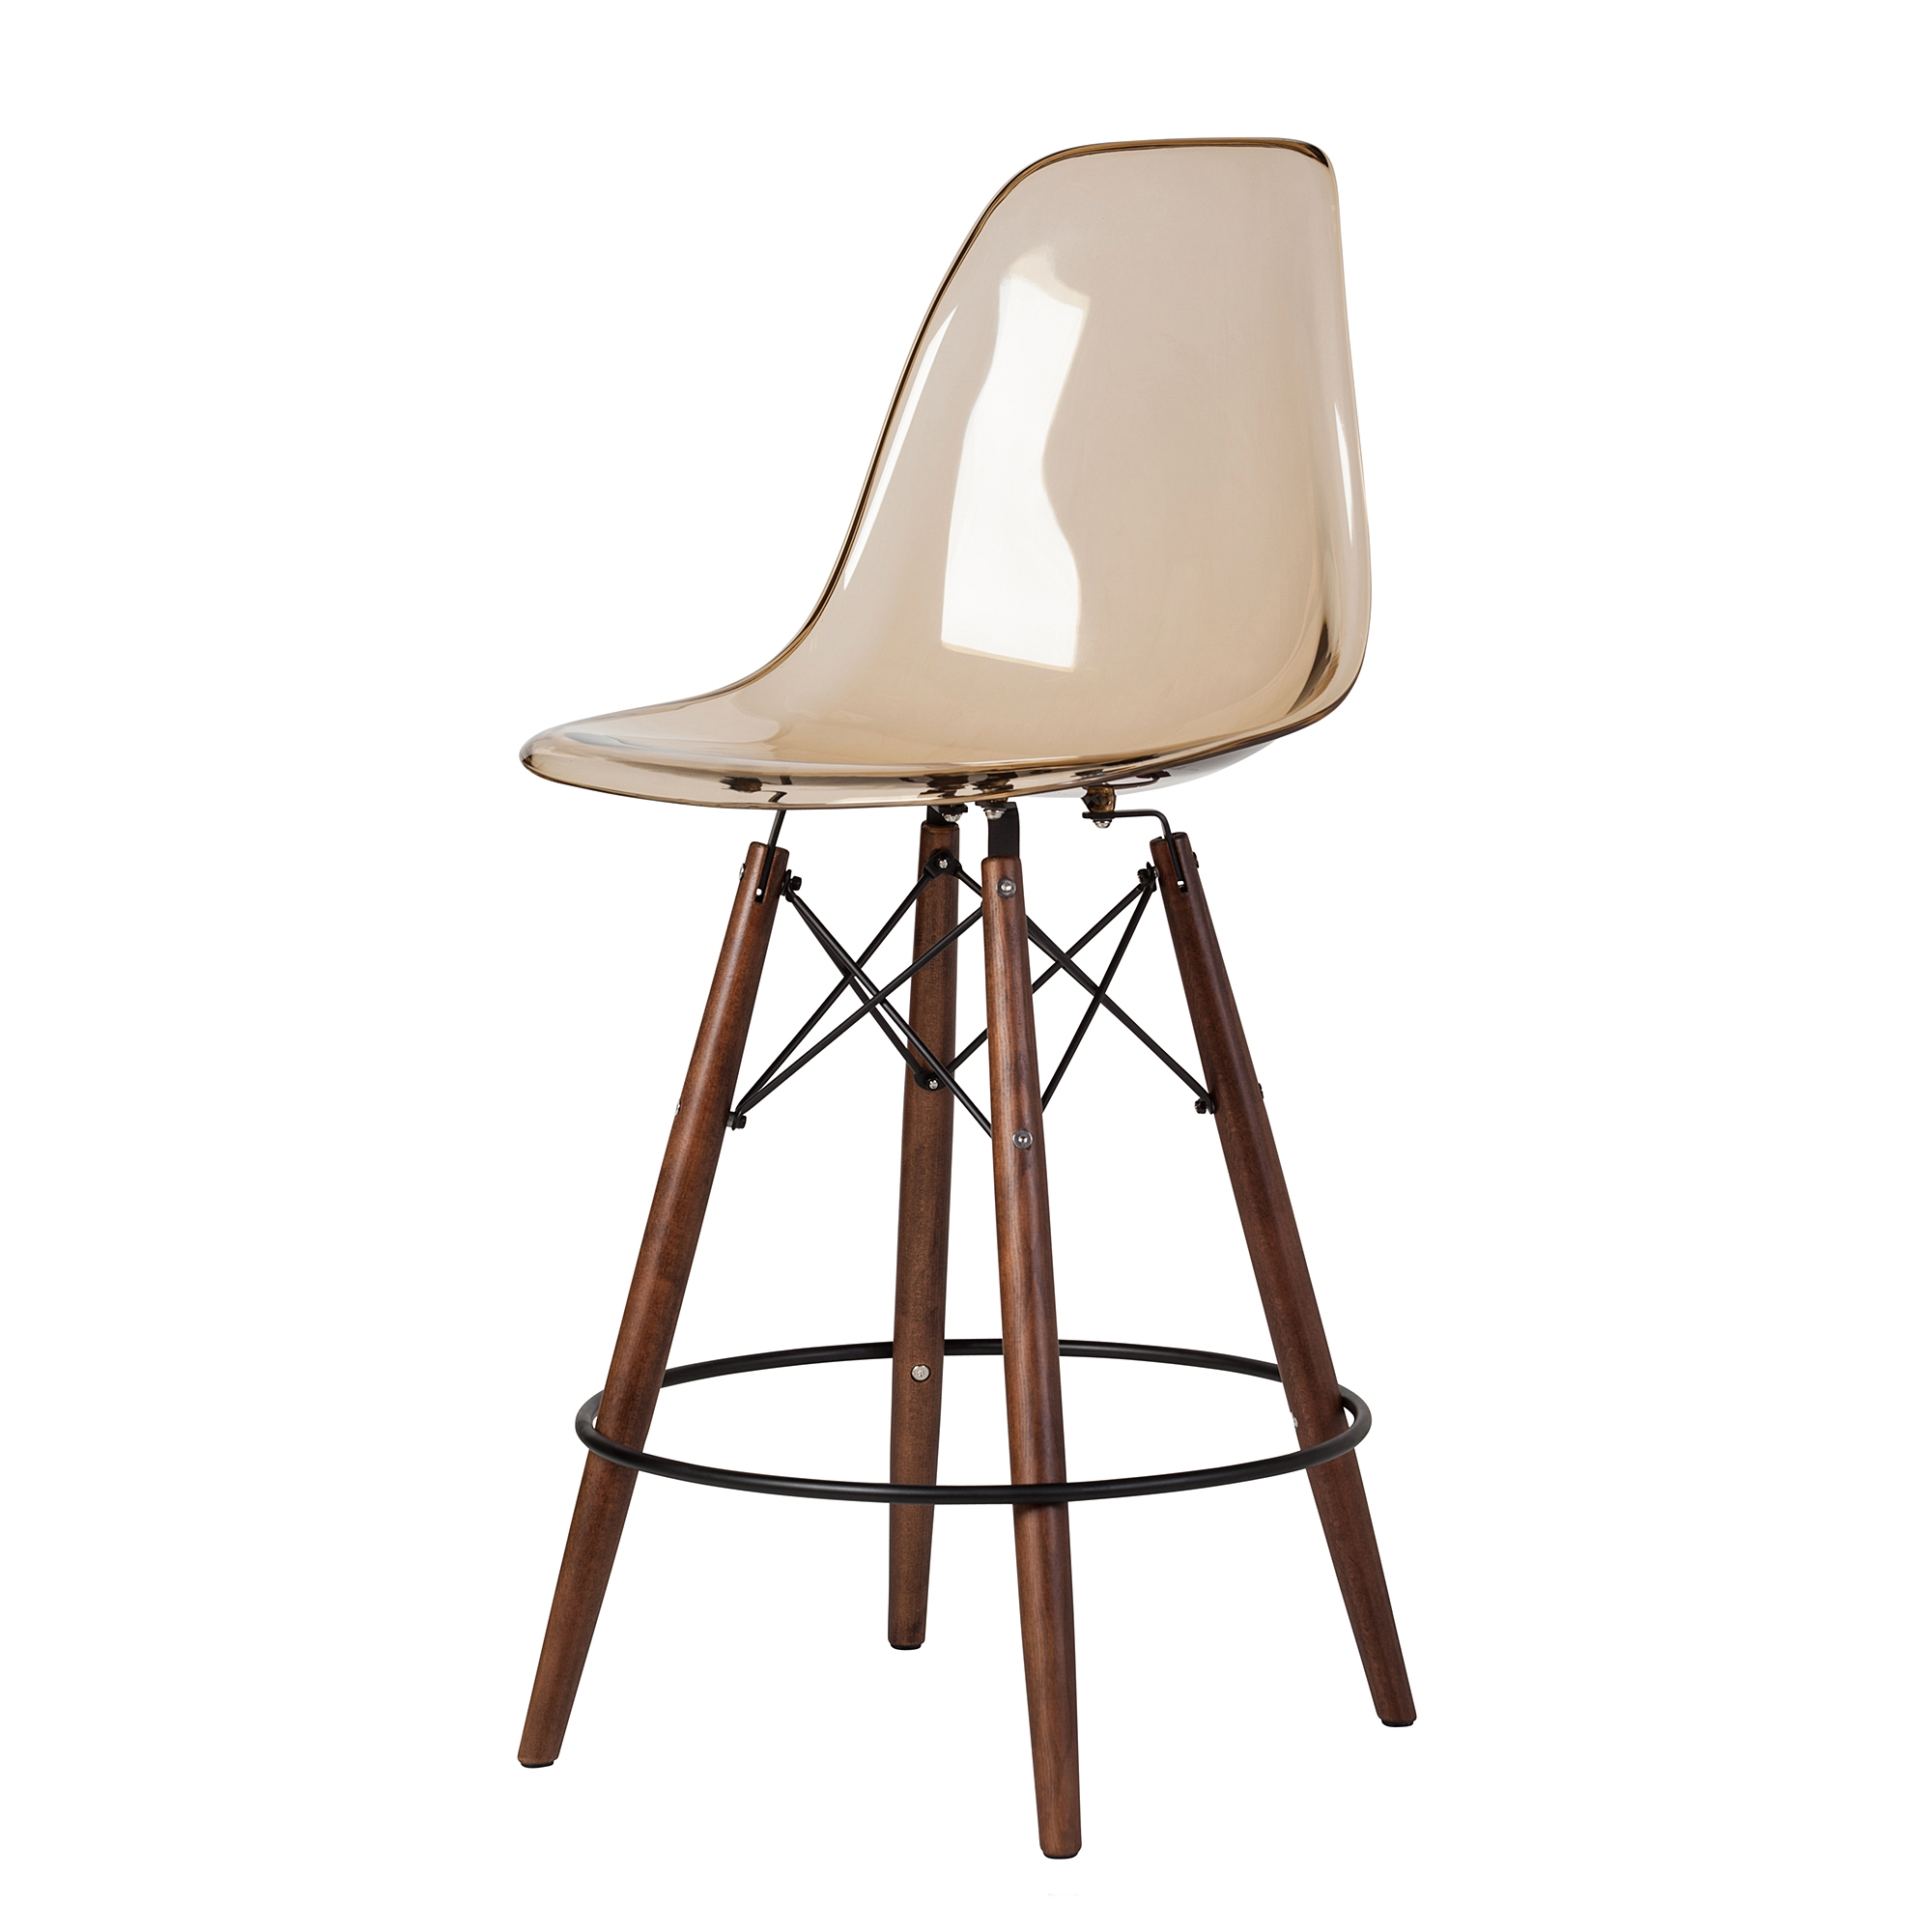 Charles Eames Charles Eames Style Dsw Acrylic Counter Stool In Amber The Khazana Home Austin Furniture Store